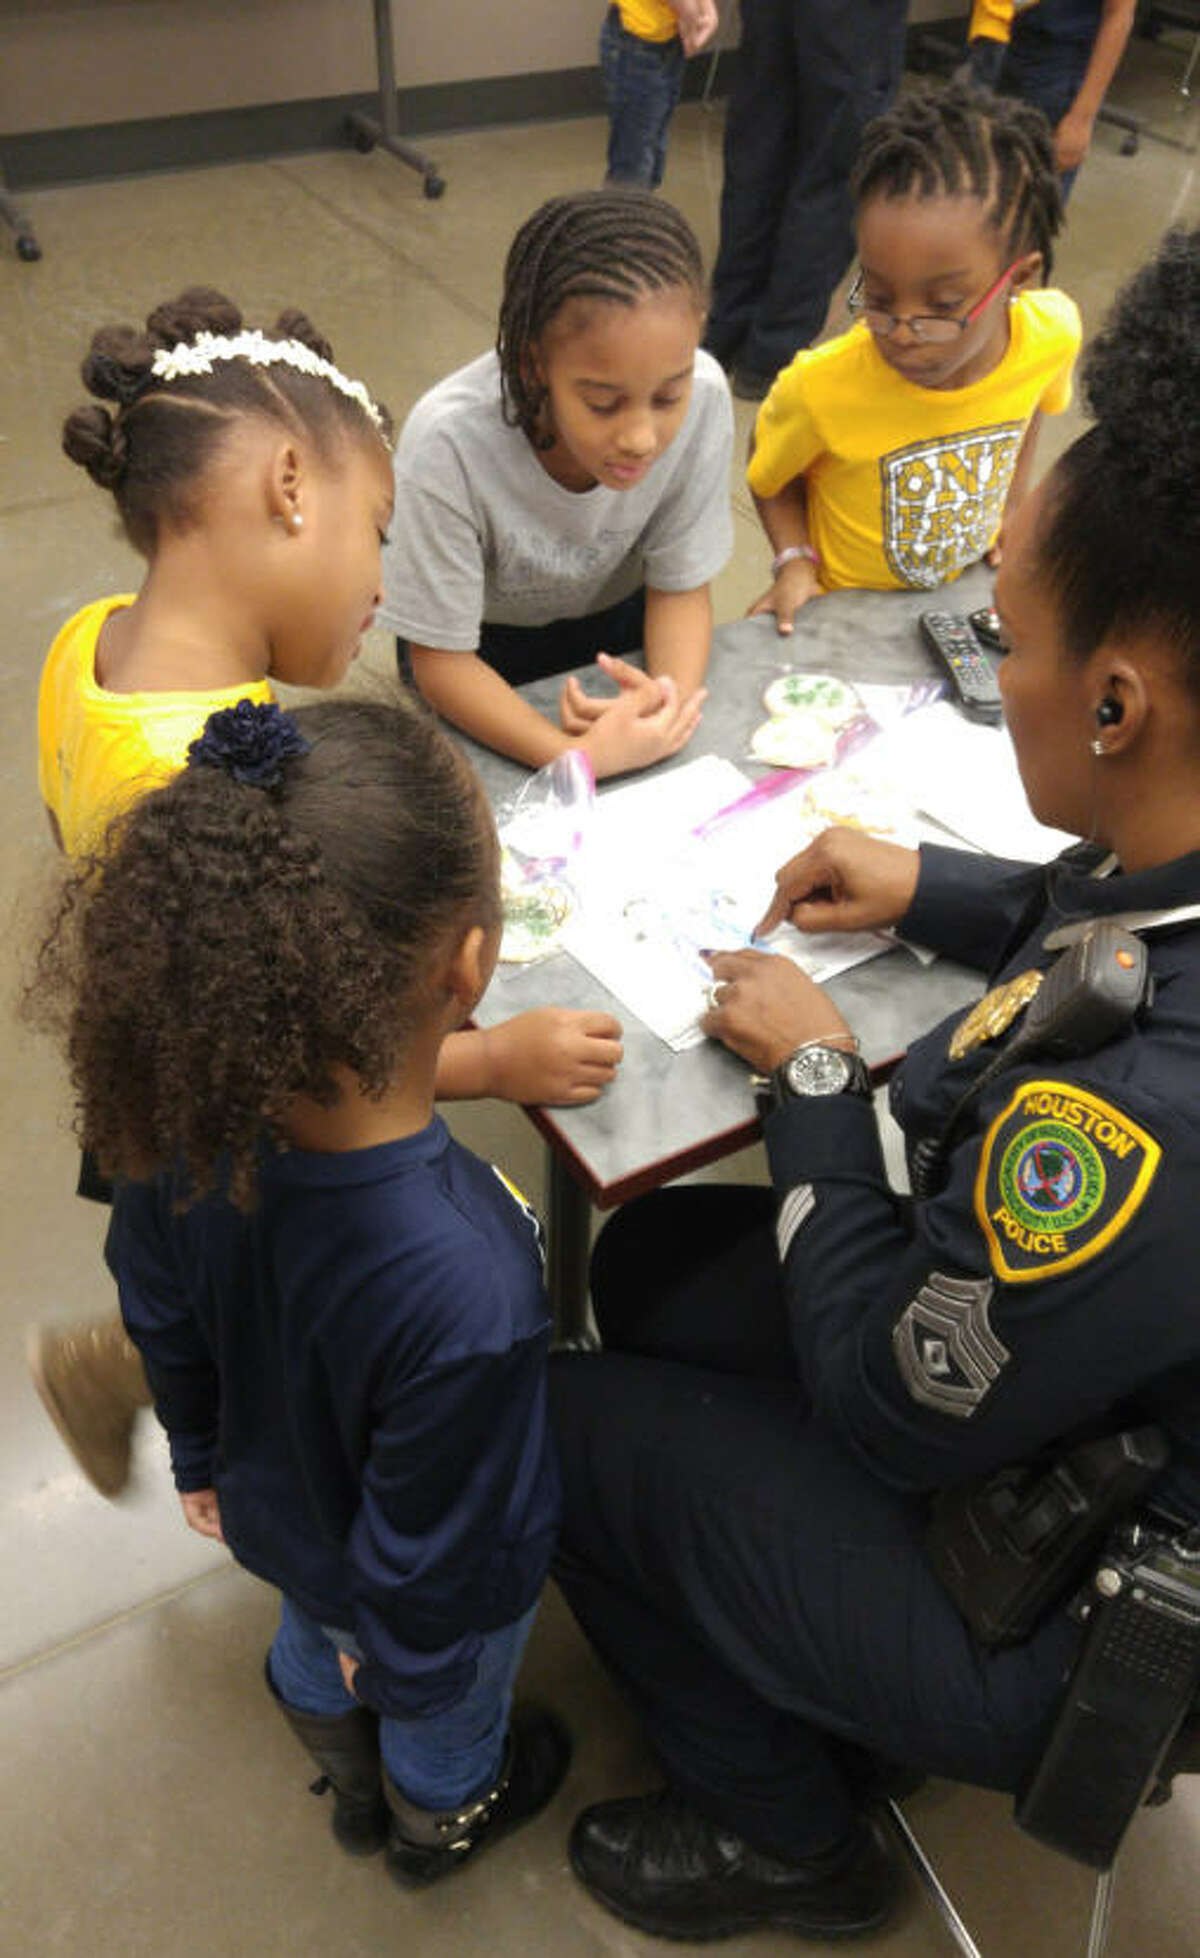 Westbury Christian first-graders recently thanked officers at HPD's South Gessner Division for their service by delivering cookies the students baked and decorated.